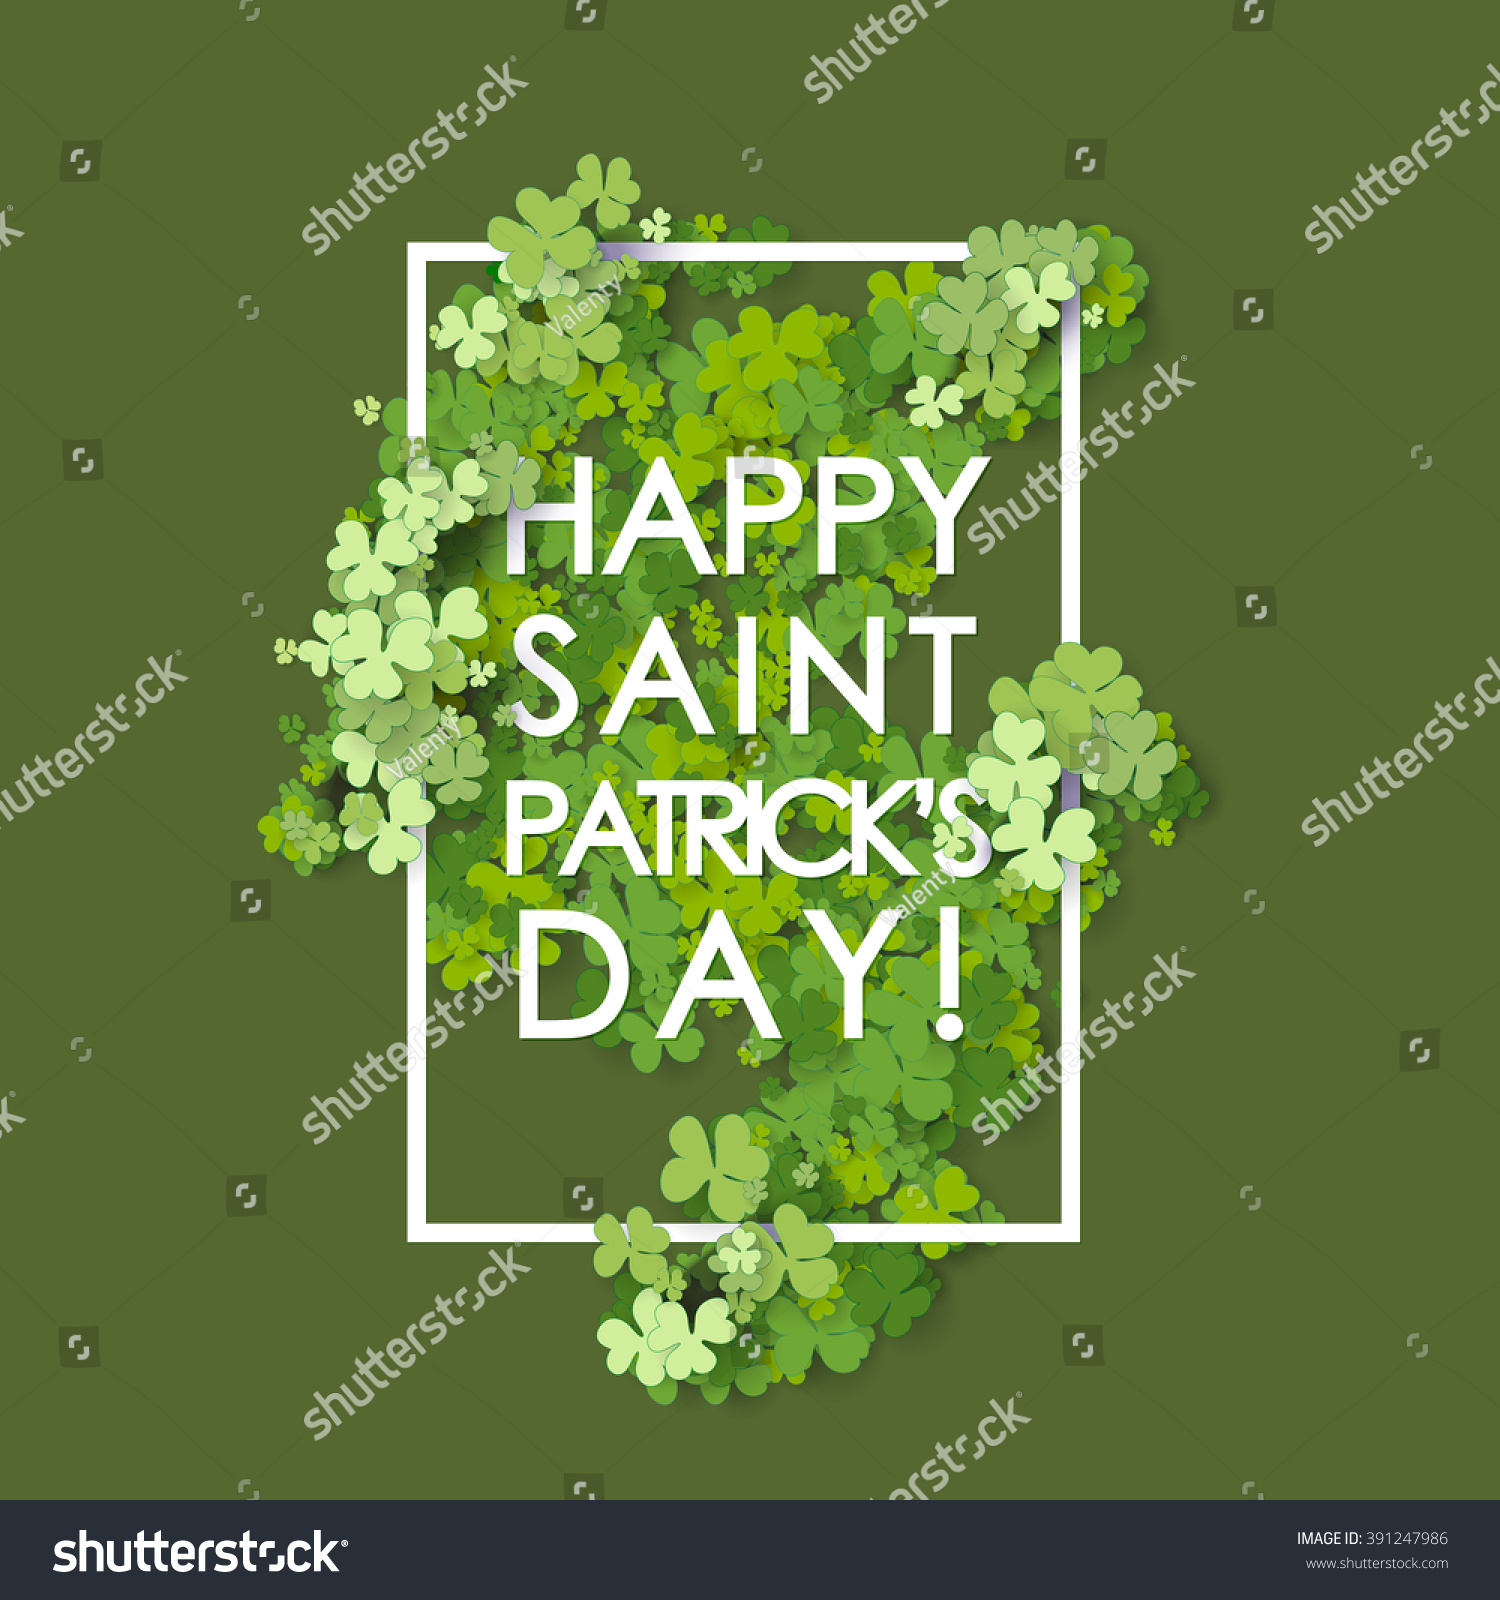 St Patrick's Day background Vector illustration for lucky spring design with shamrock